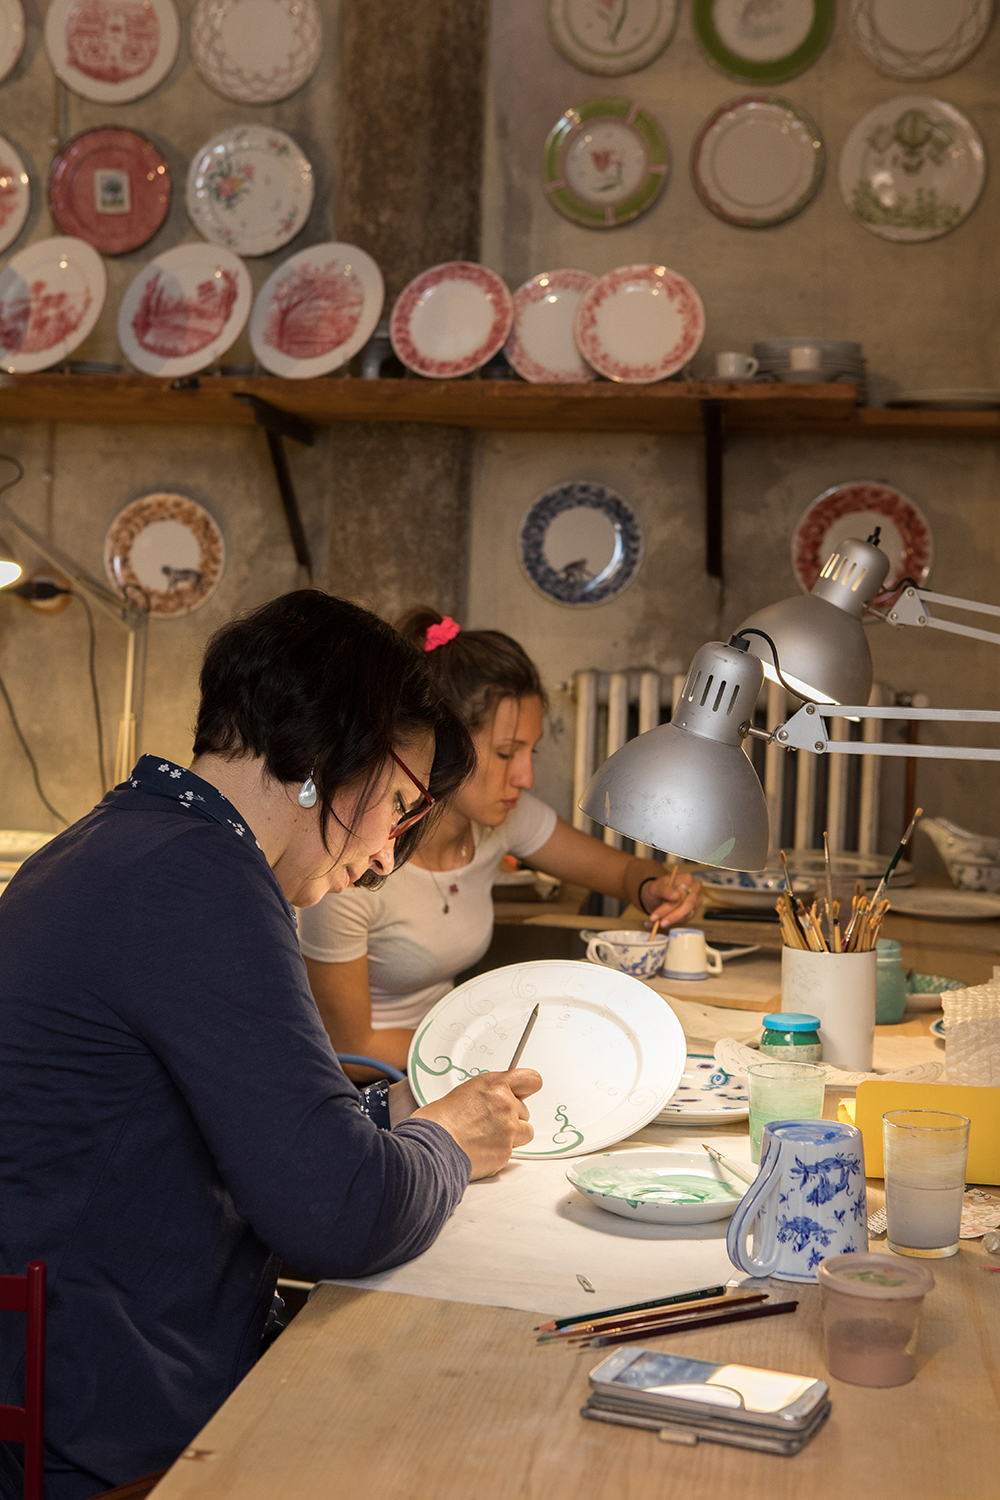 Paravincini ceramics professional profile portrait photography documentary Italy by Aimee Almstead 6.jpg